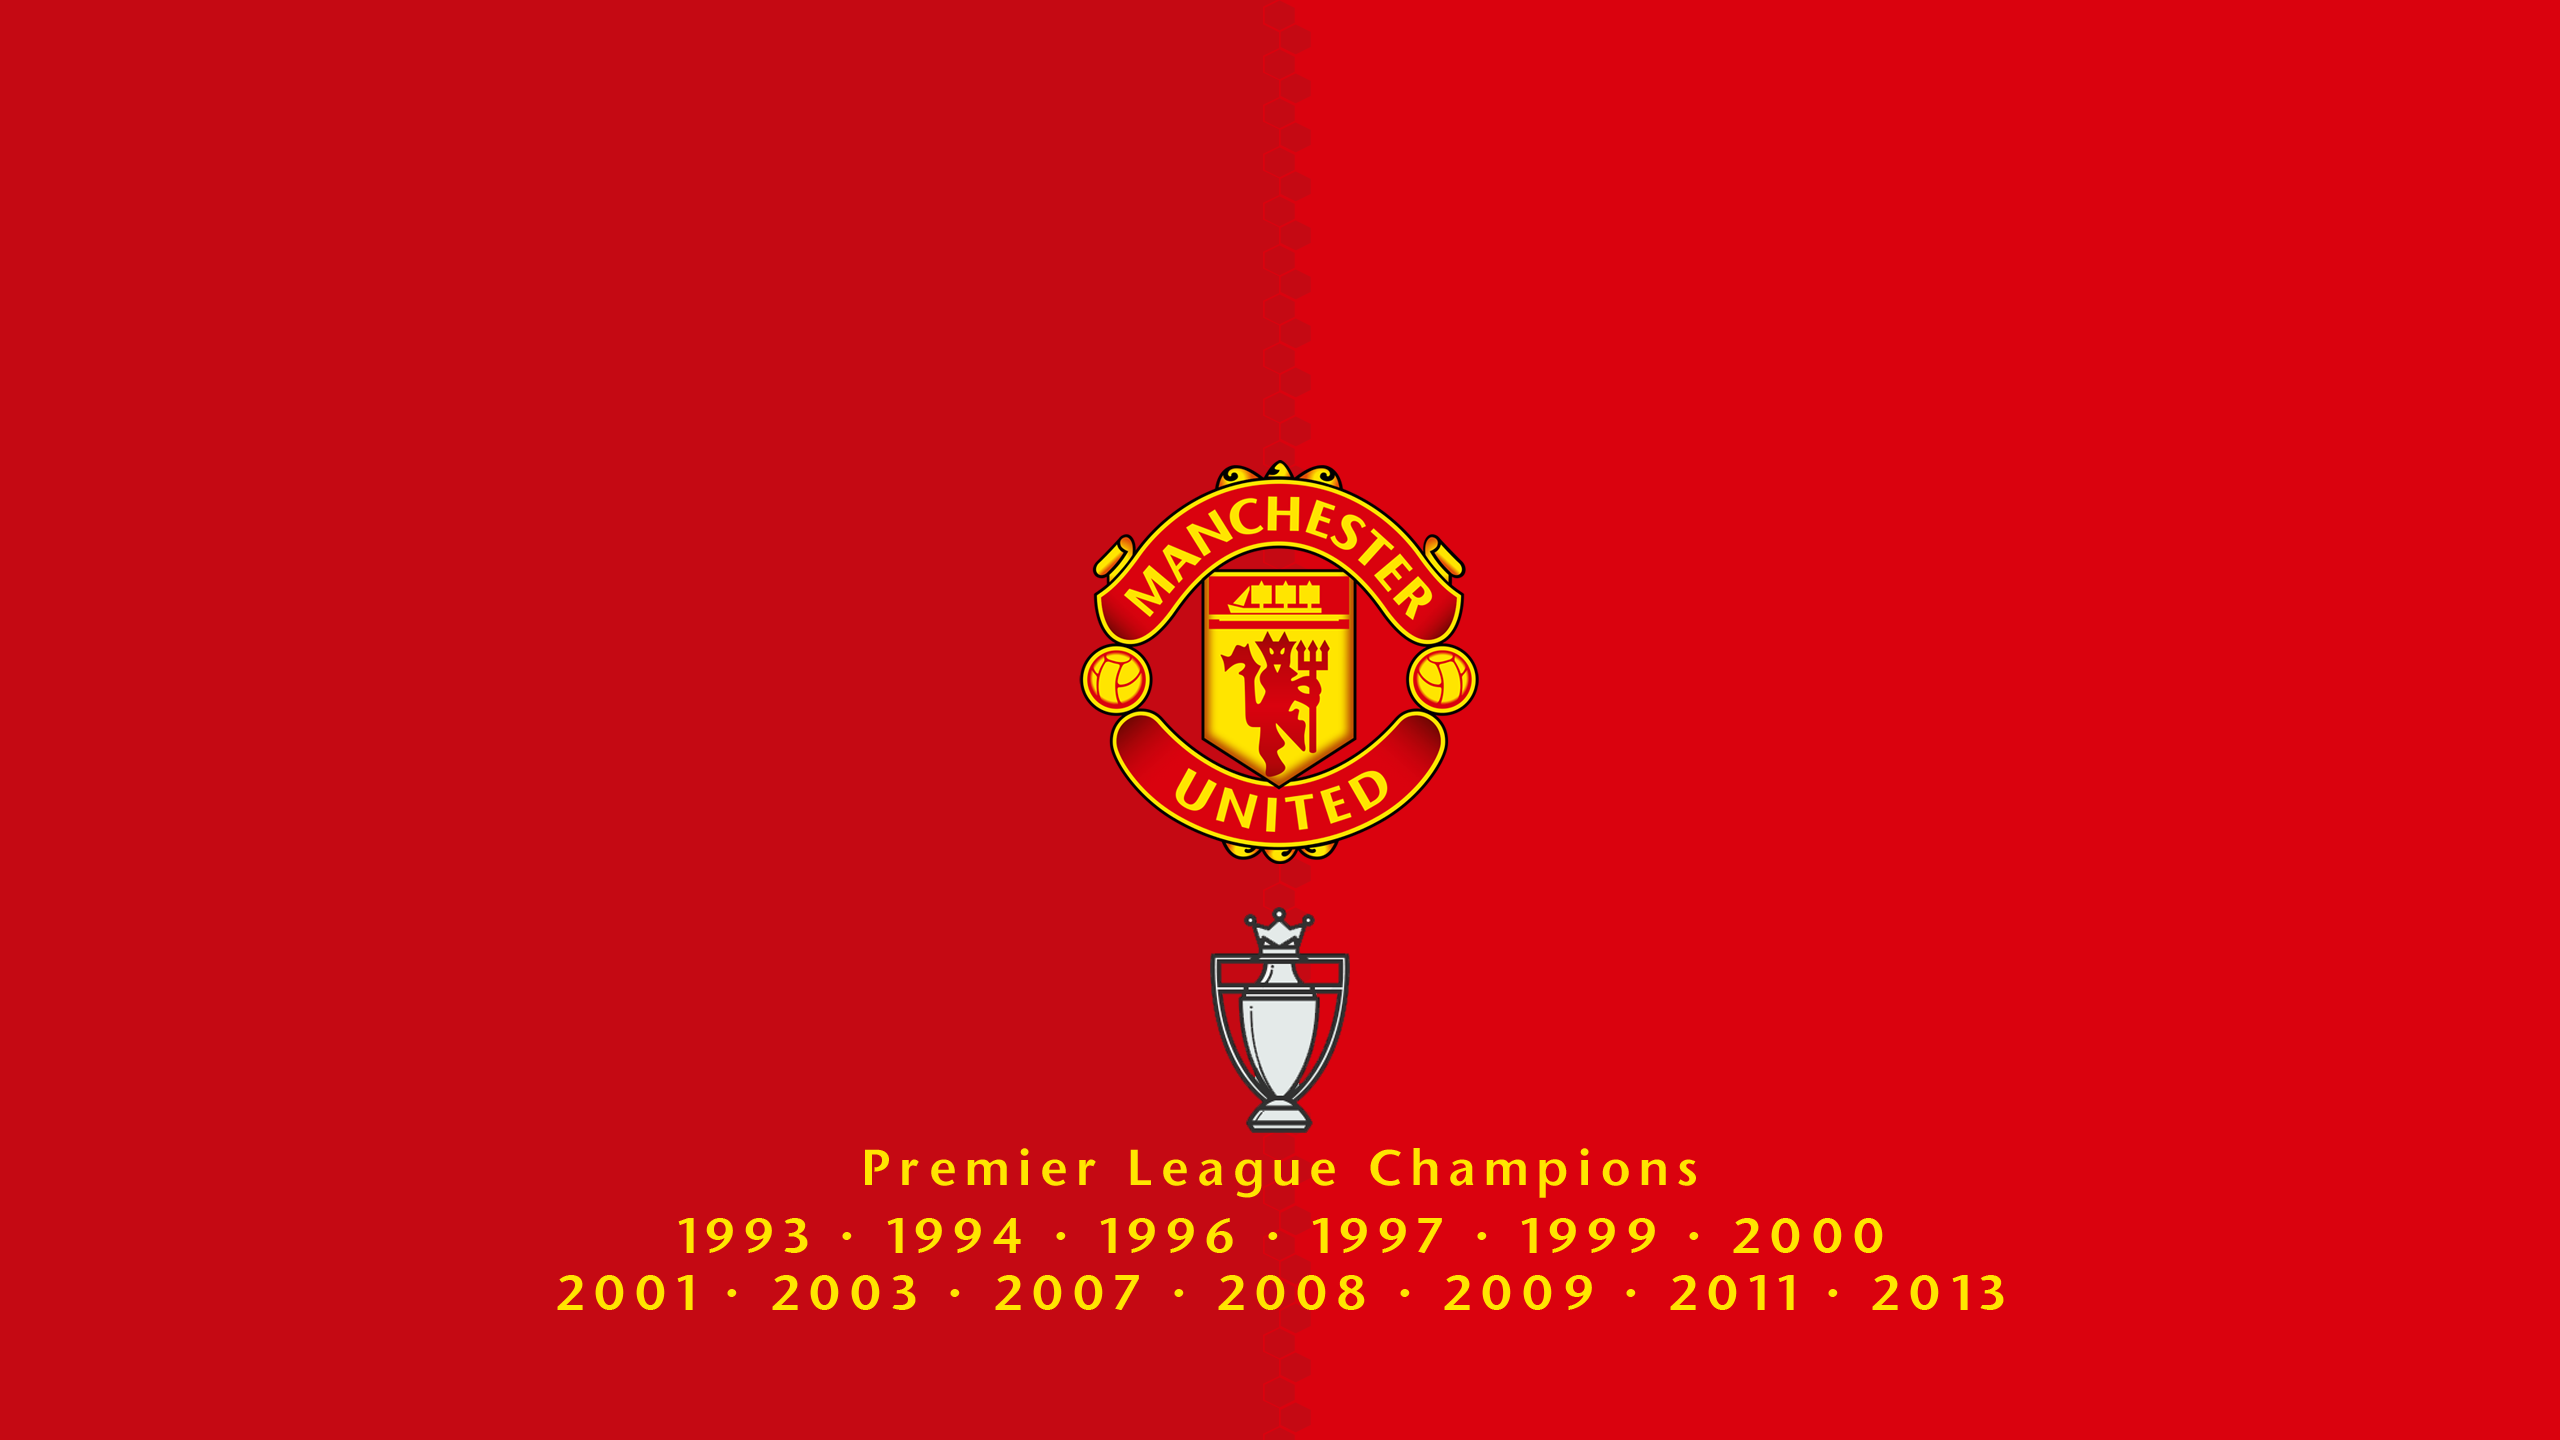 Manchester United FC - EPL Champs